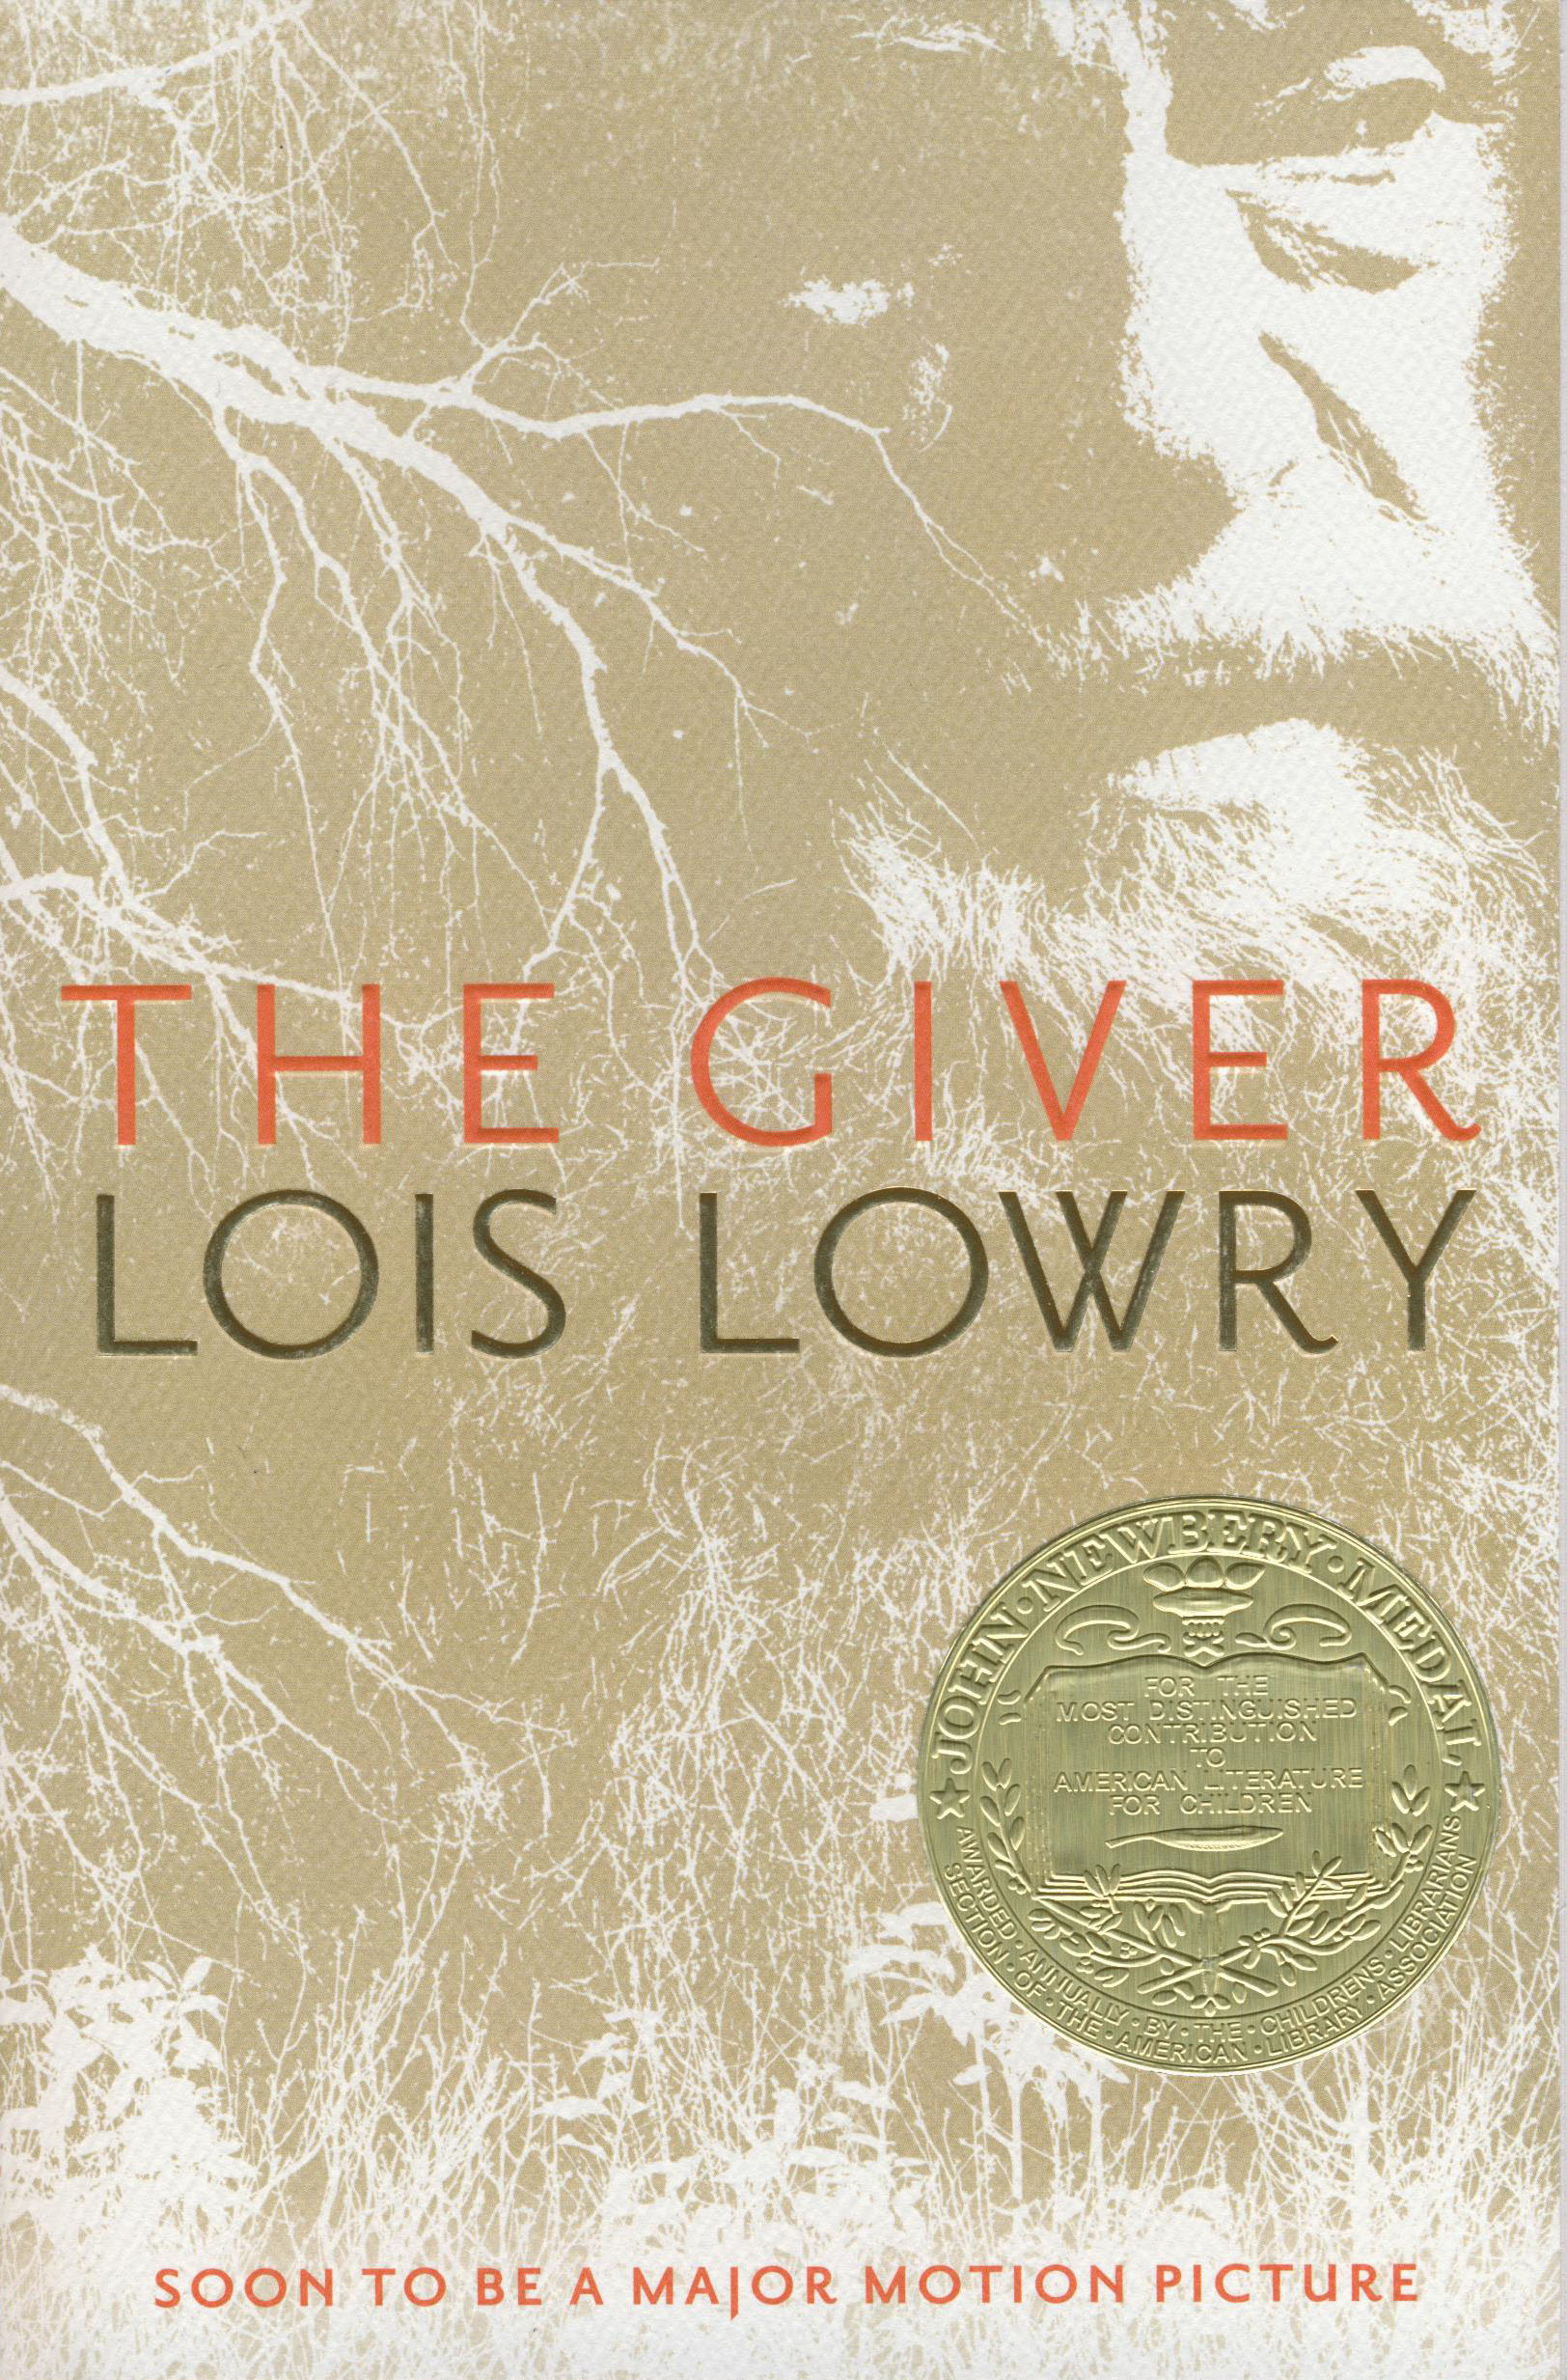 The Giver Paperback Book (760L)